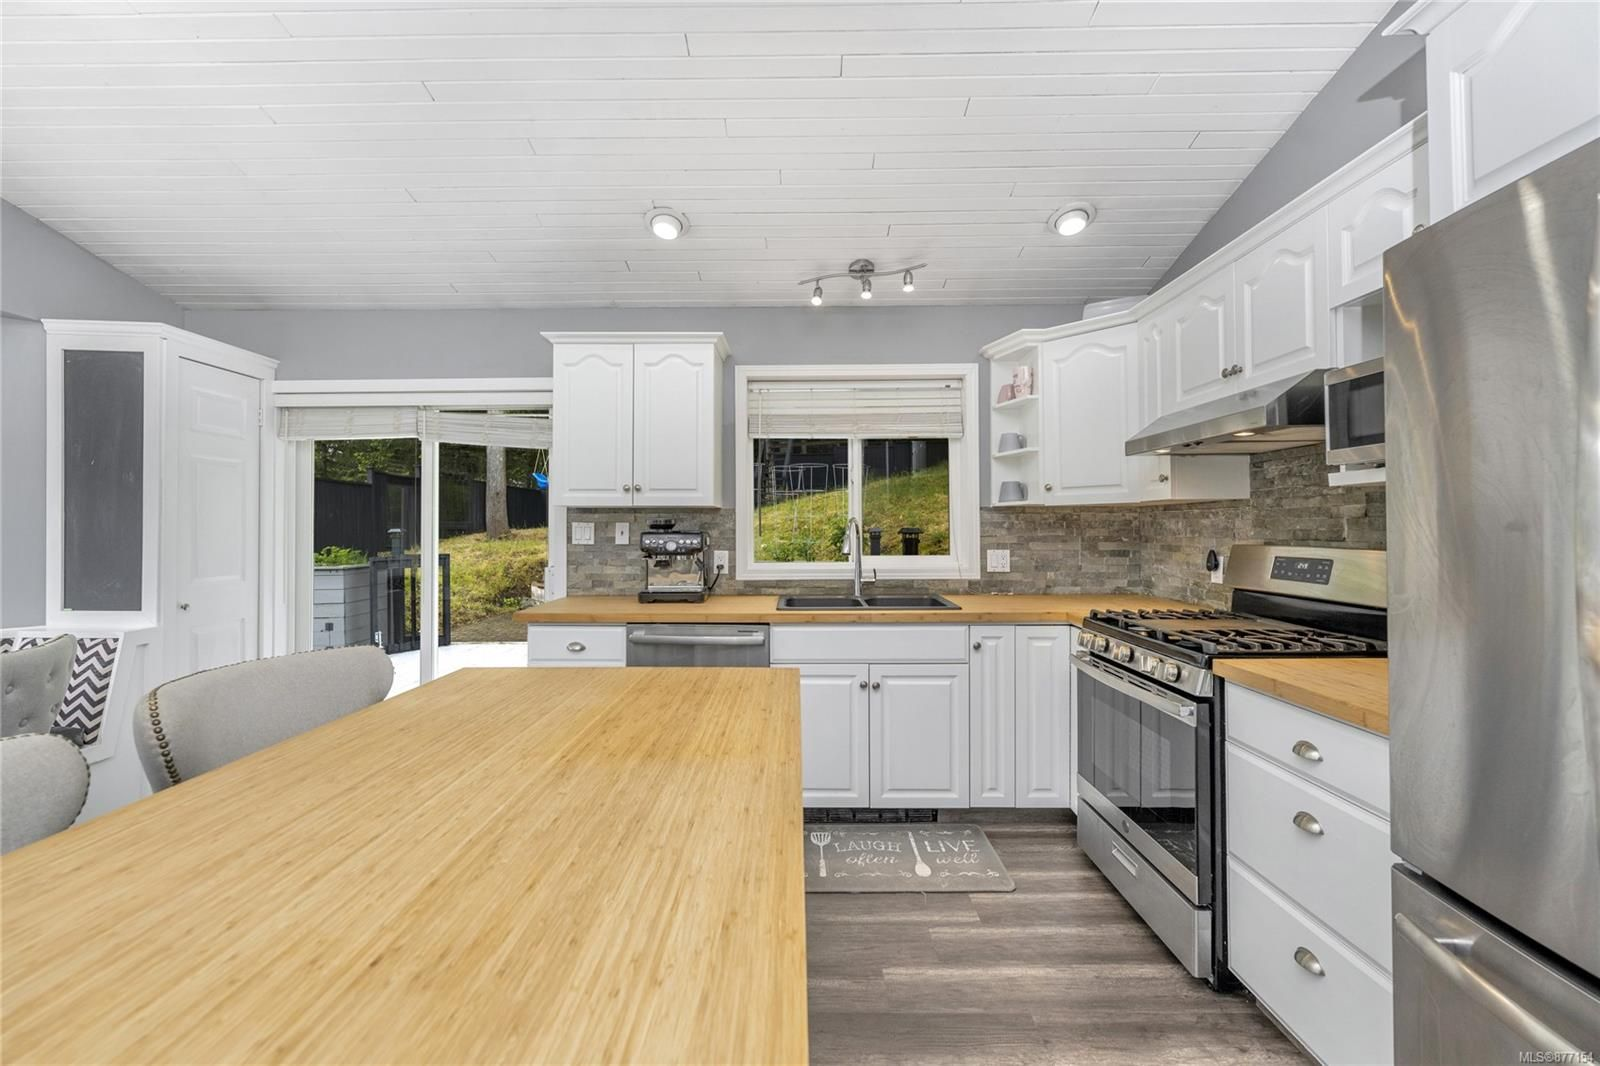 Photo 6: Photos: 2376 Terrace Rd in : ML Shawnigan House for sale (Malahat & Area)  : MLS®# 877154